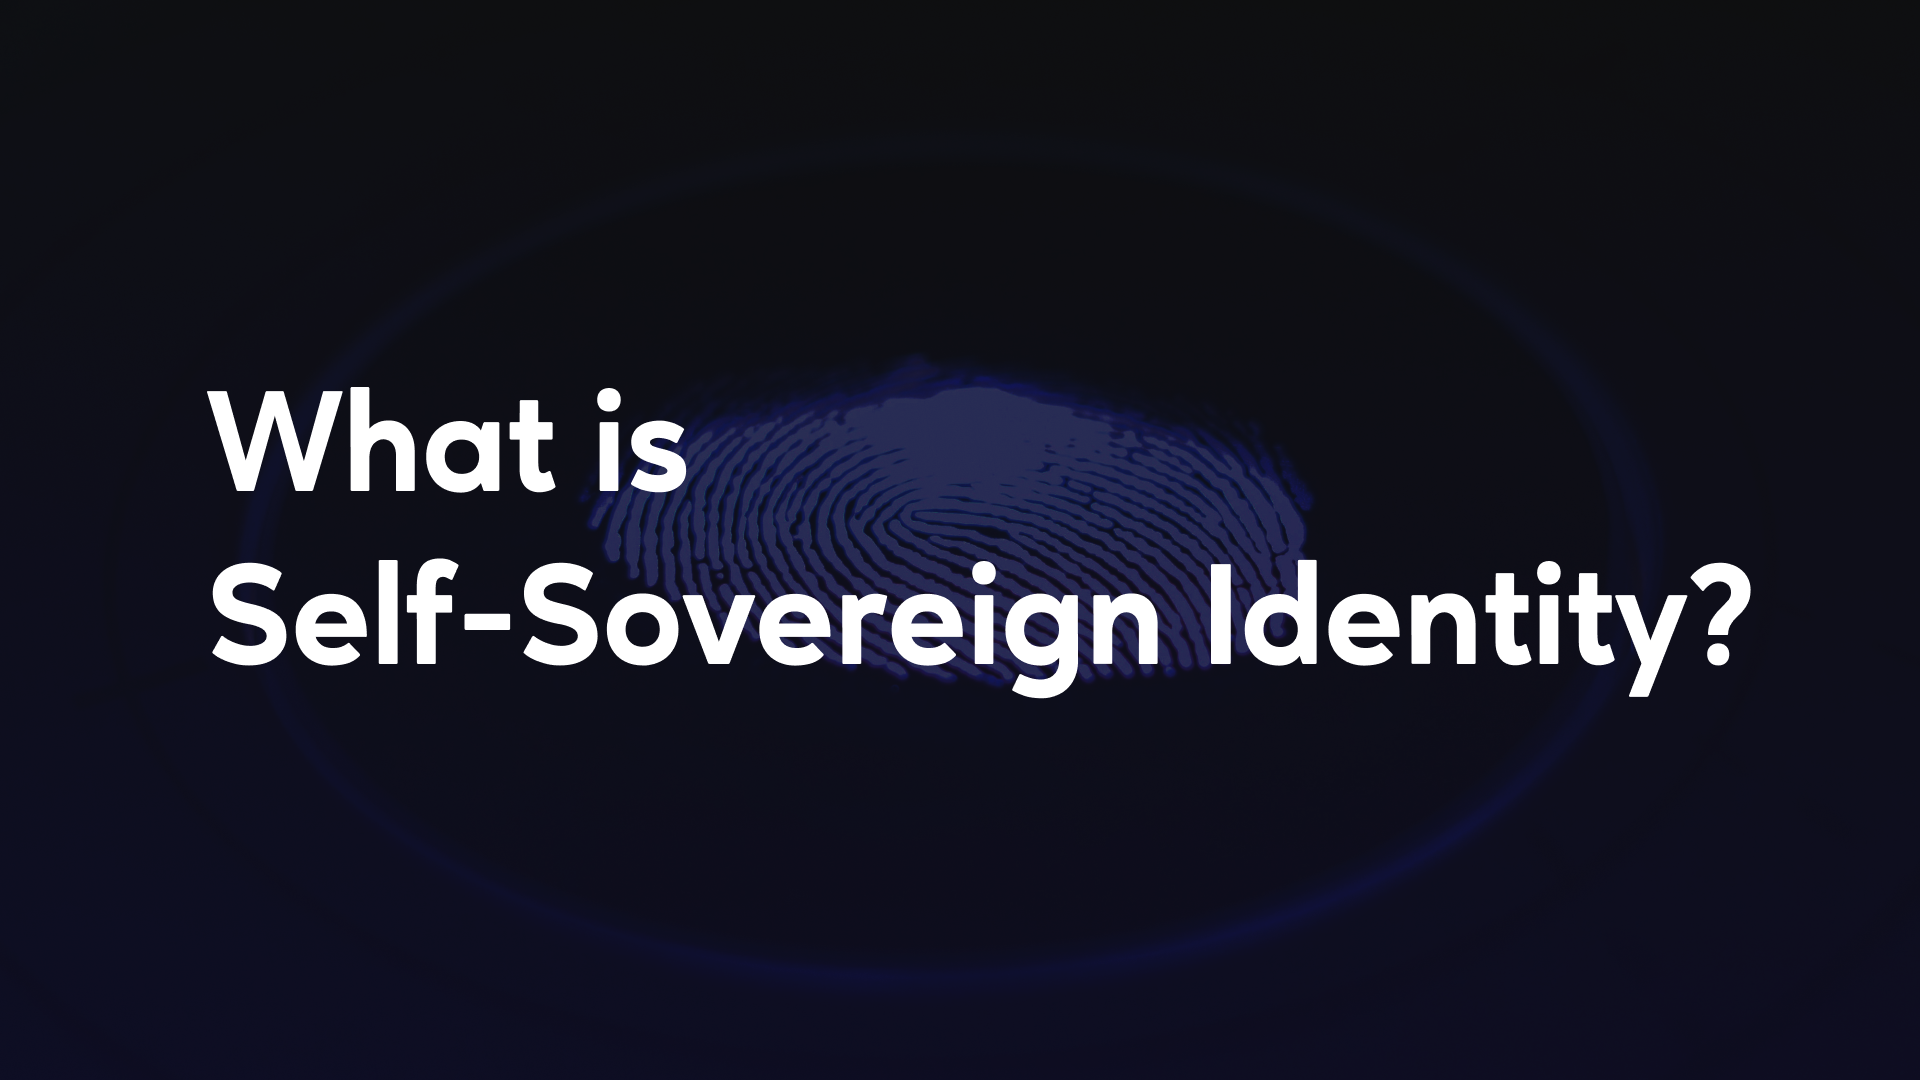 The main principle behind SSIs is that identity information and associated data should be more easily accessible, secure and private in the digital world as it is in the physical world.